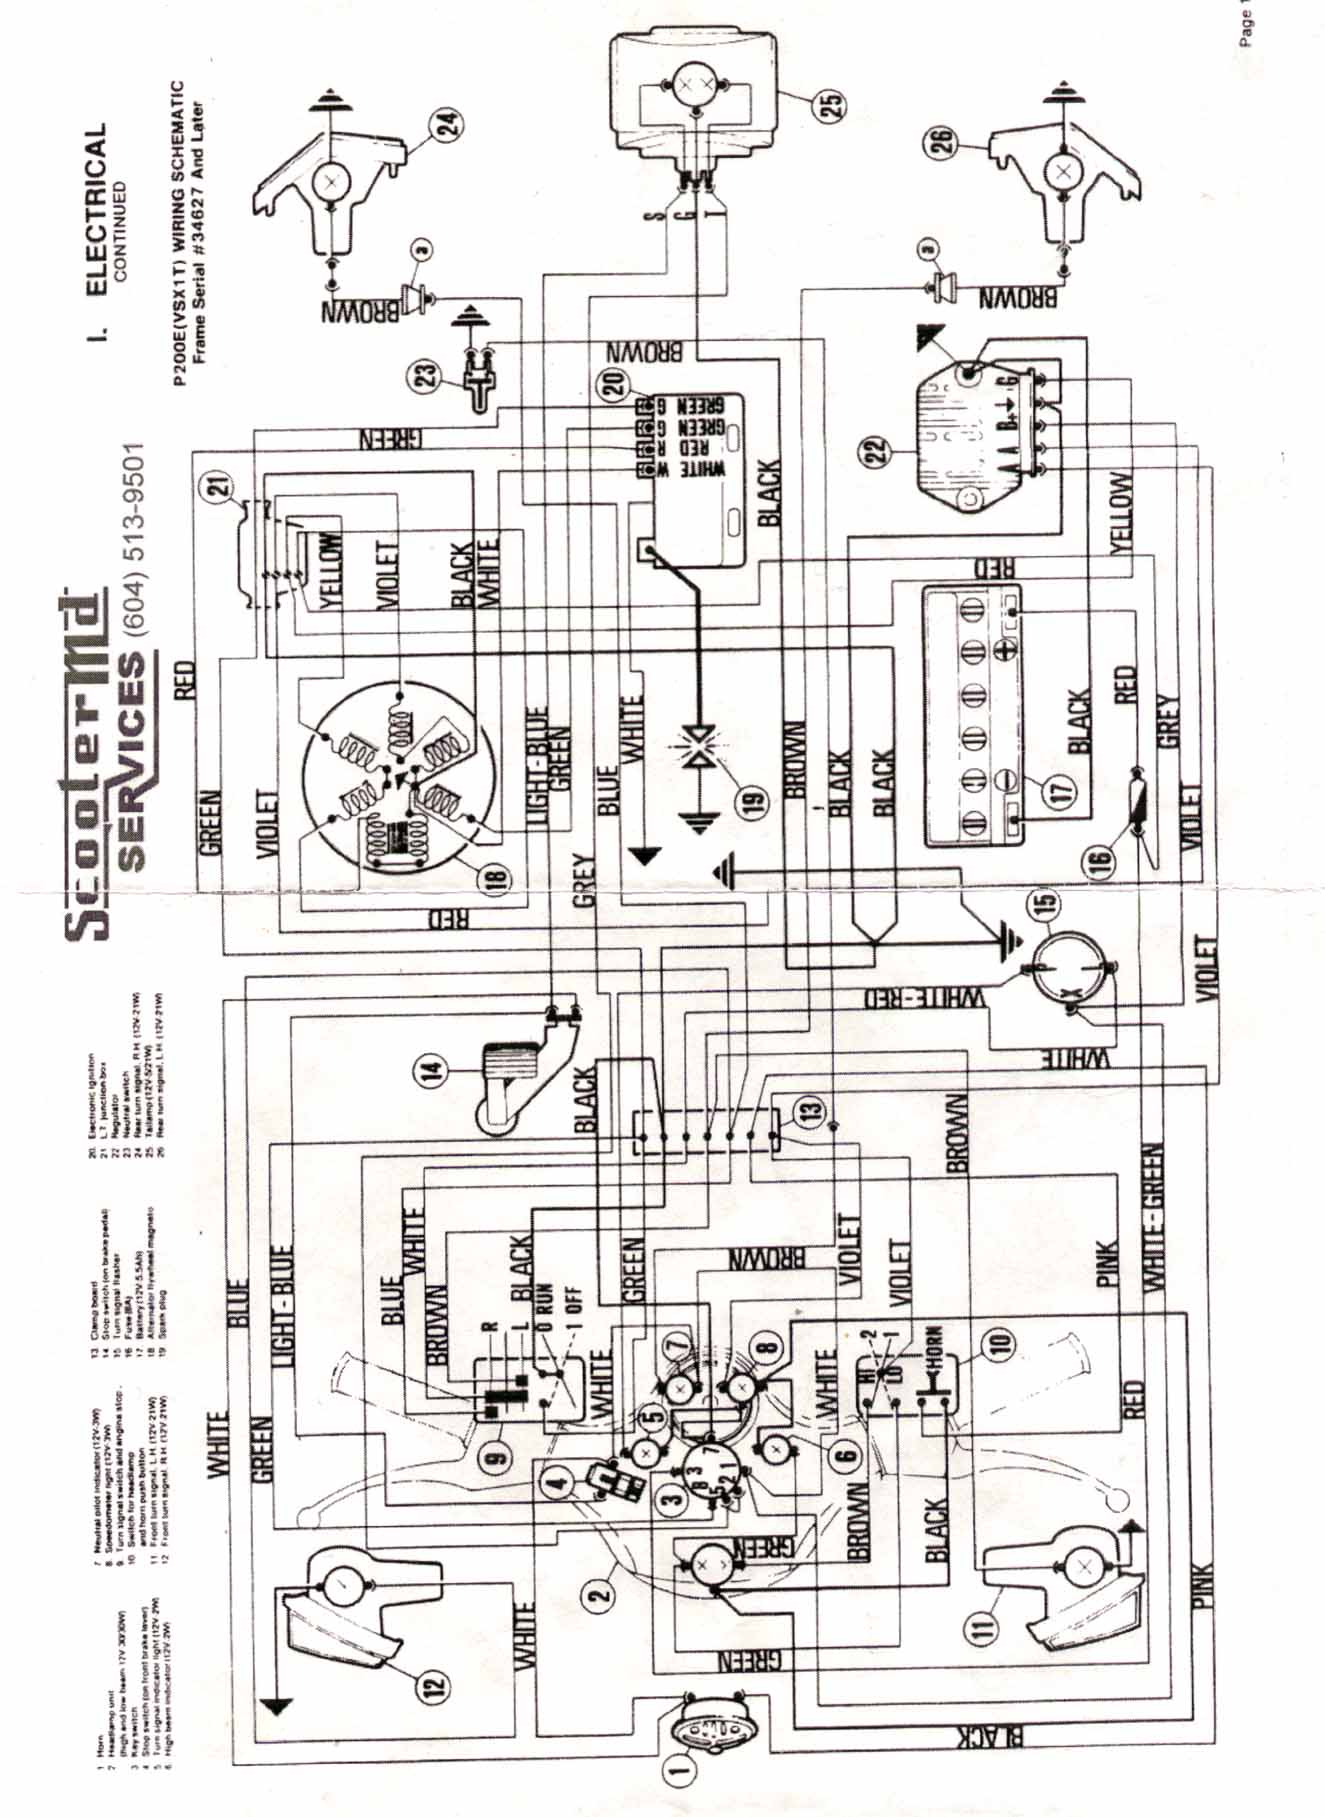 auto elec wiring diagrams wiring diagram data intermediate light switch wiring gaff help diynotcom diy [ 1325 x 1817 Pixel ]